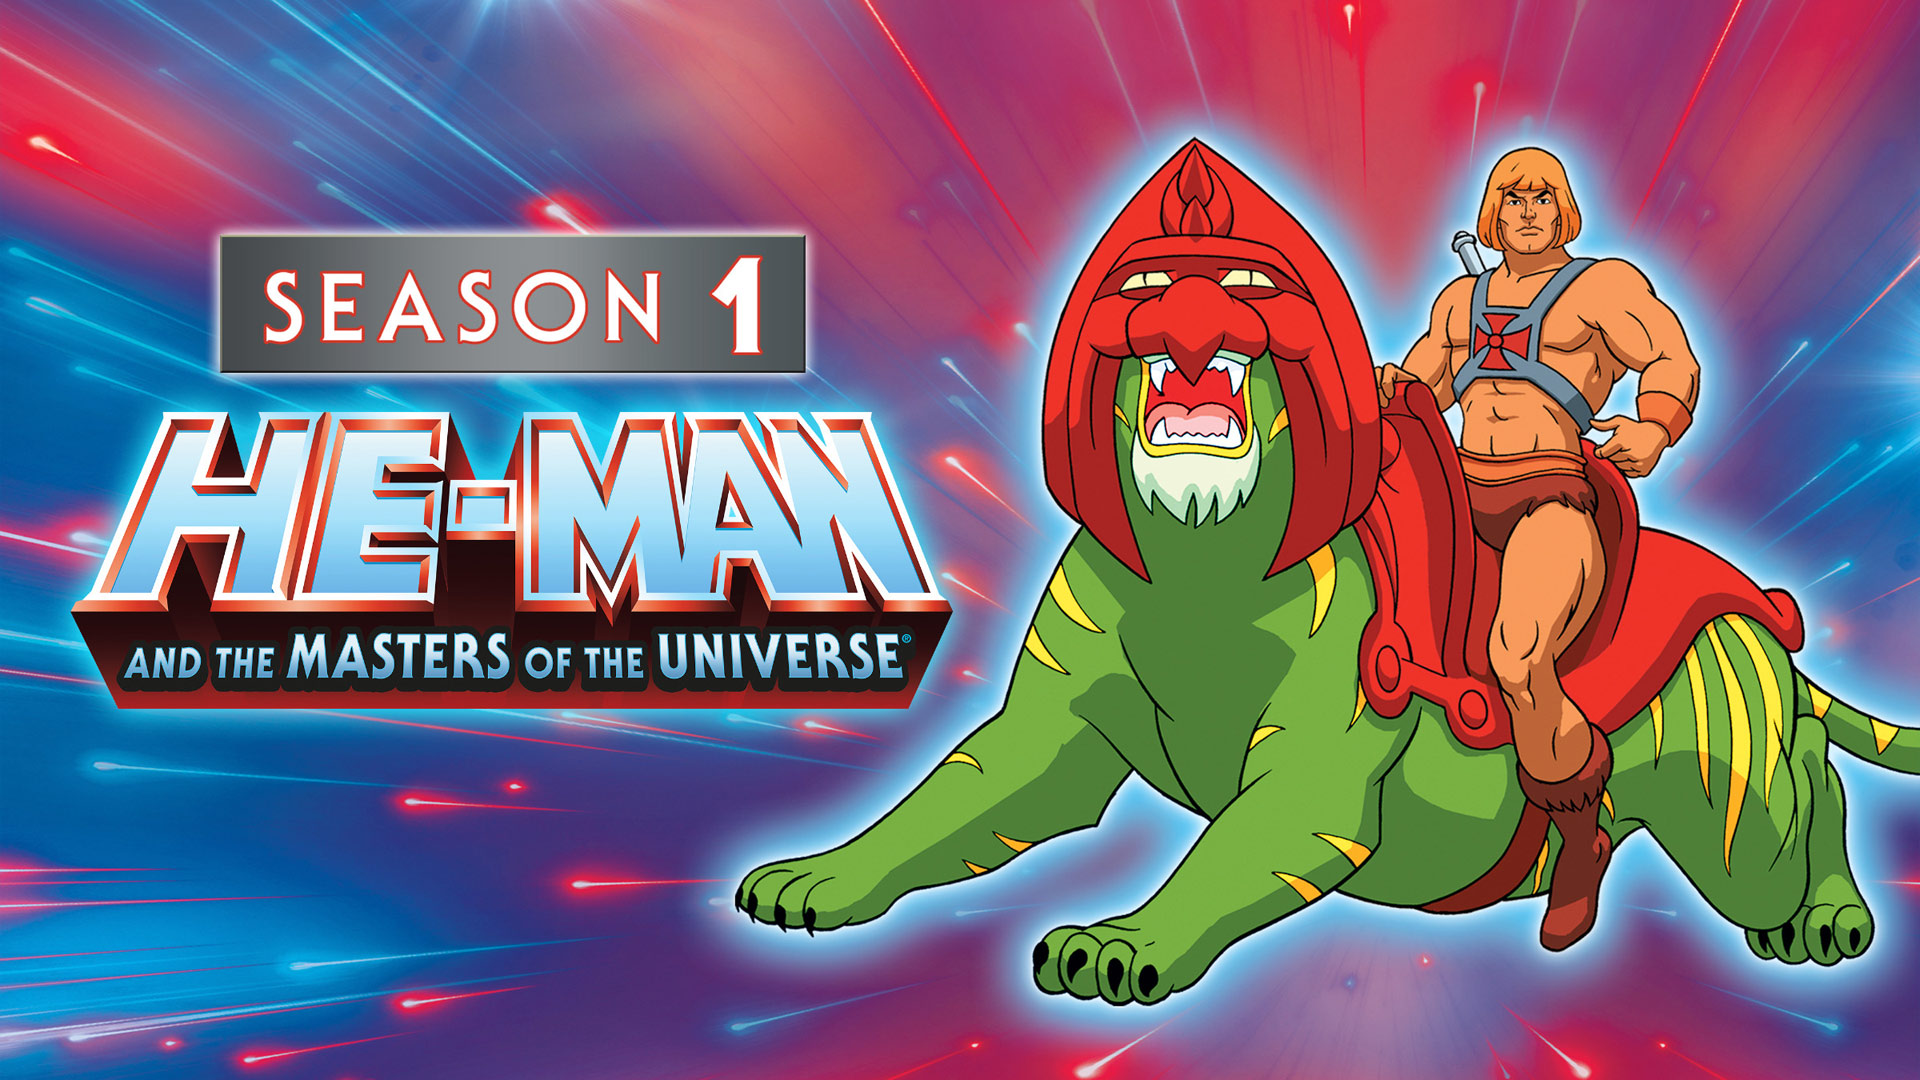 He-Man and the Masters of the Universe, Season 1